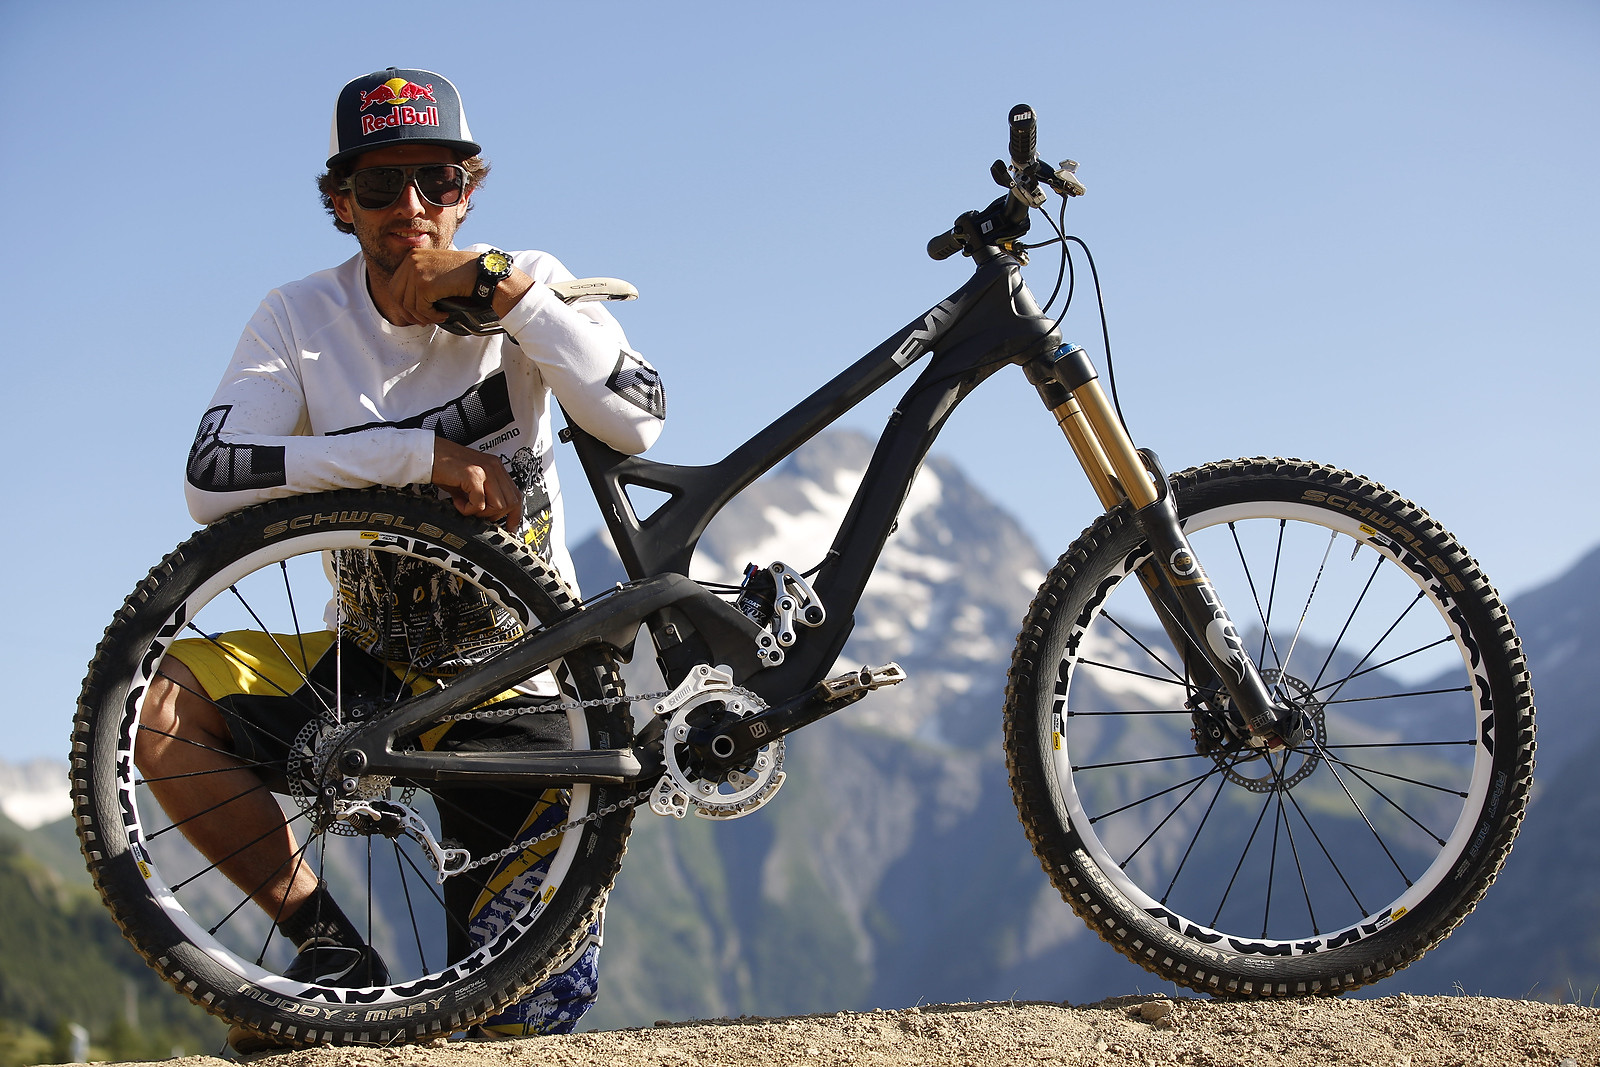 Filip Polc's Evil Uprising All-Mountain Bike from Crankworx Les 2 Alpes - Filip Polc's Evil Uprising - Mountain Biking Pictures - Vital MTB